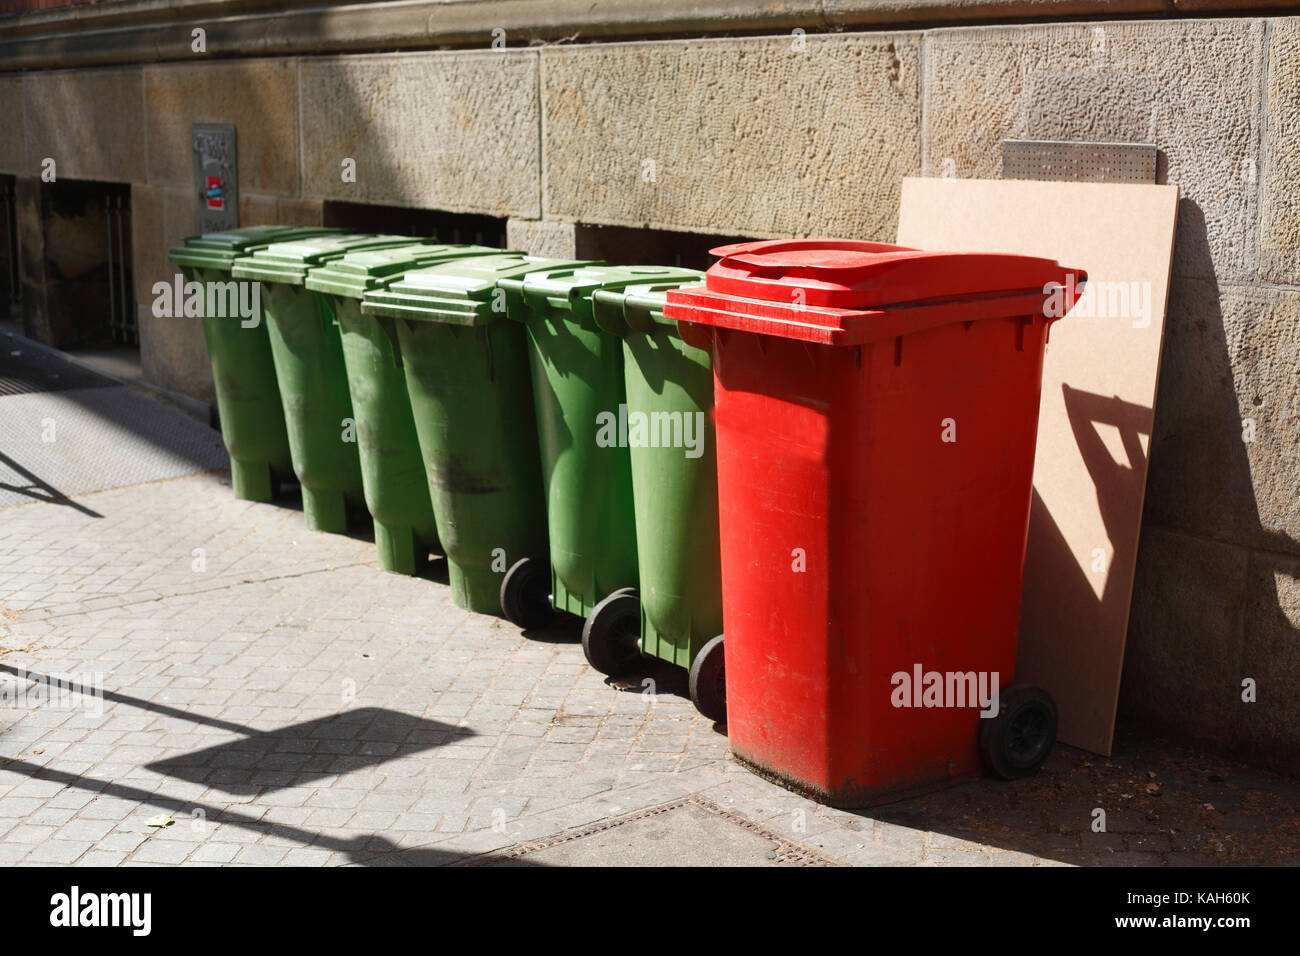 green and red recycling bins Stock Photo